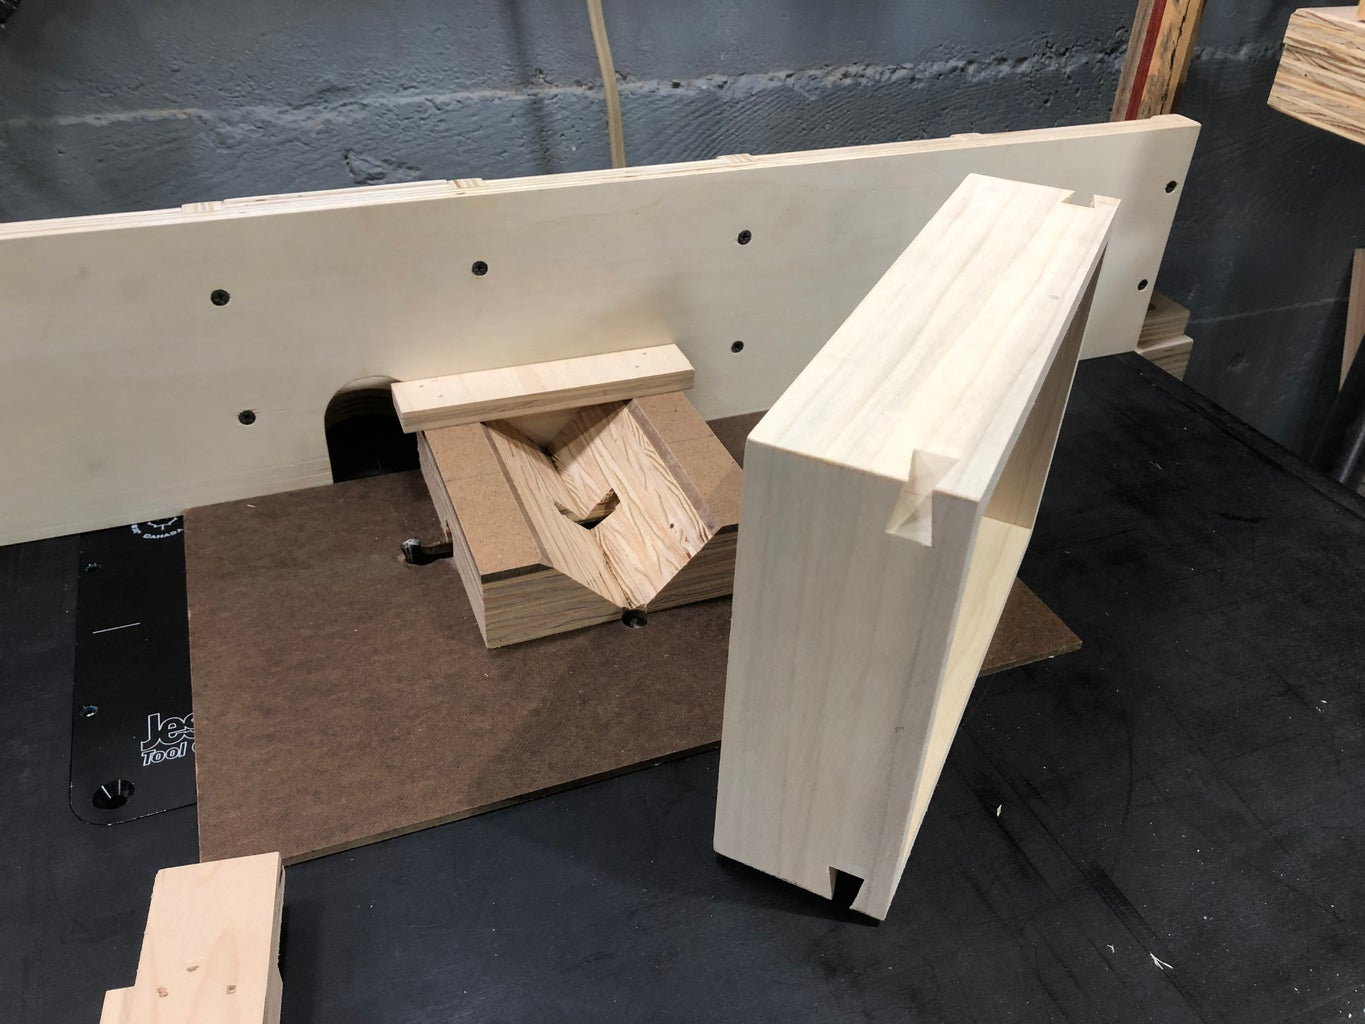 Cutting Dovetail Slots